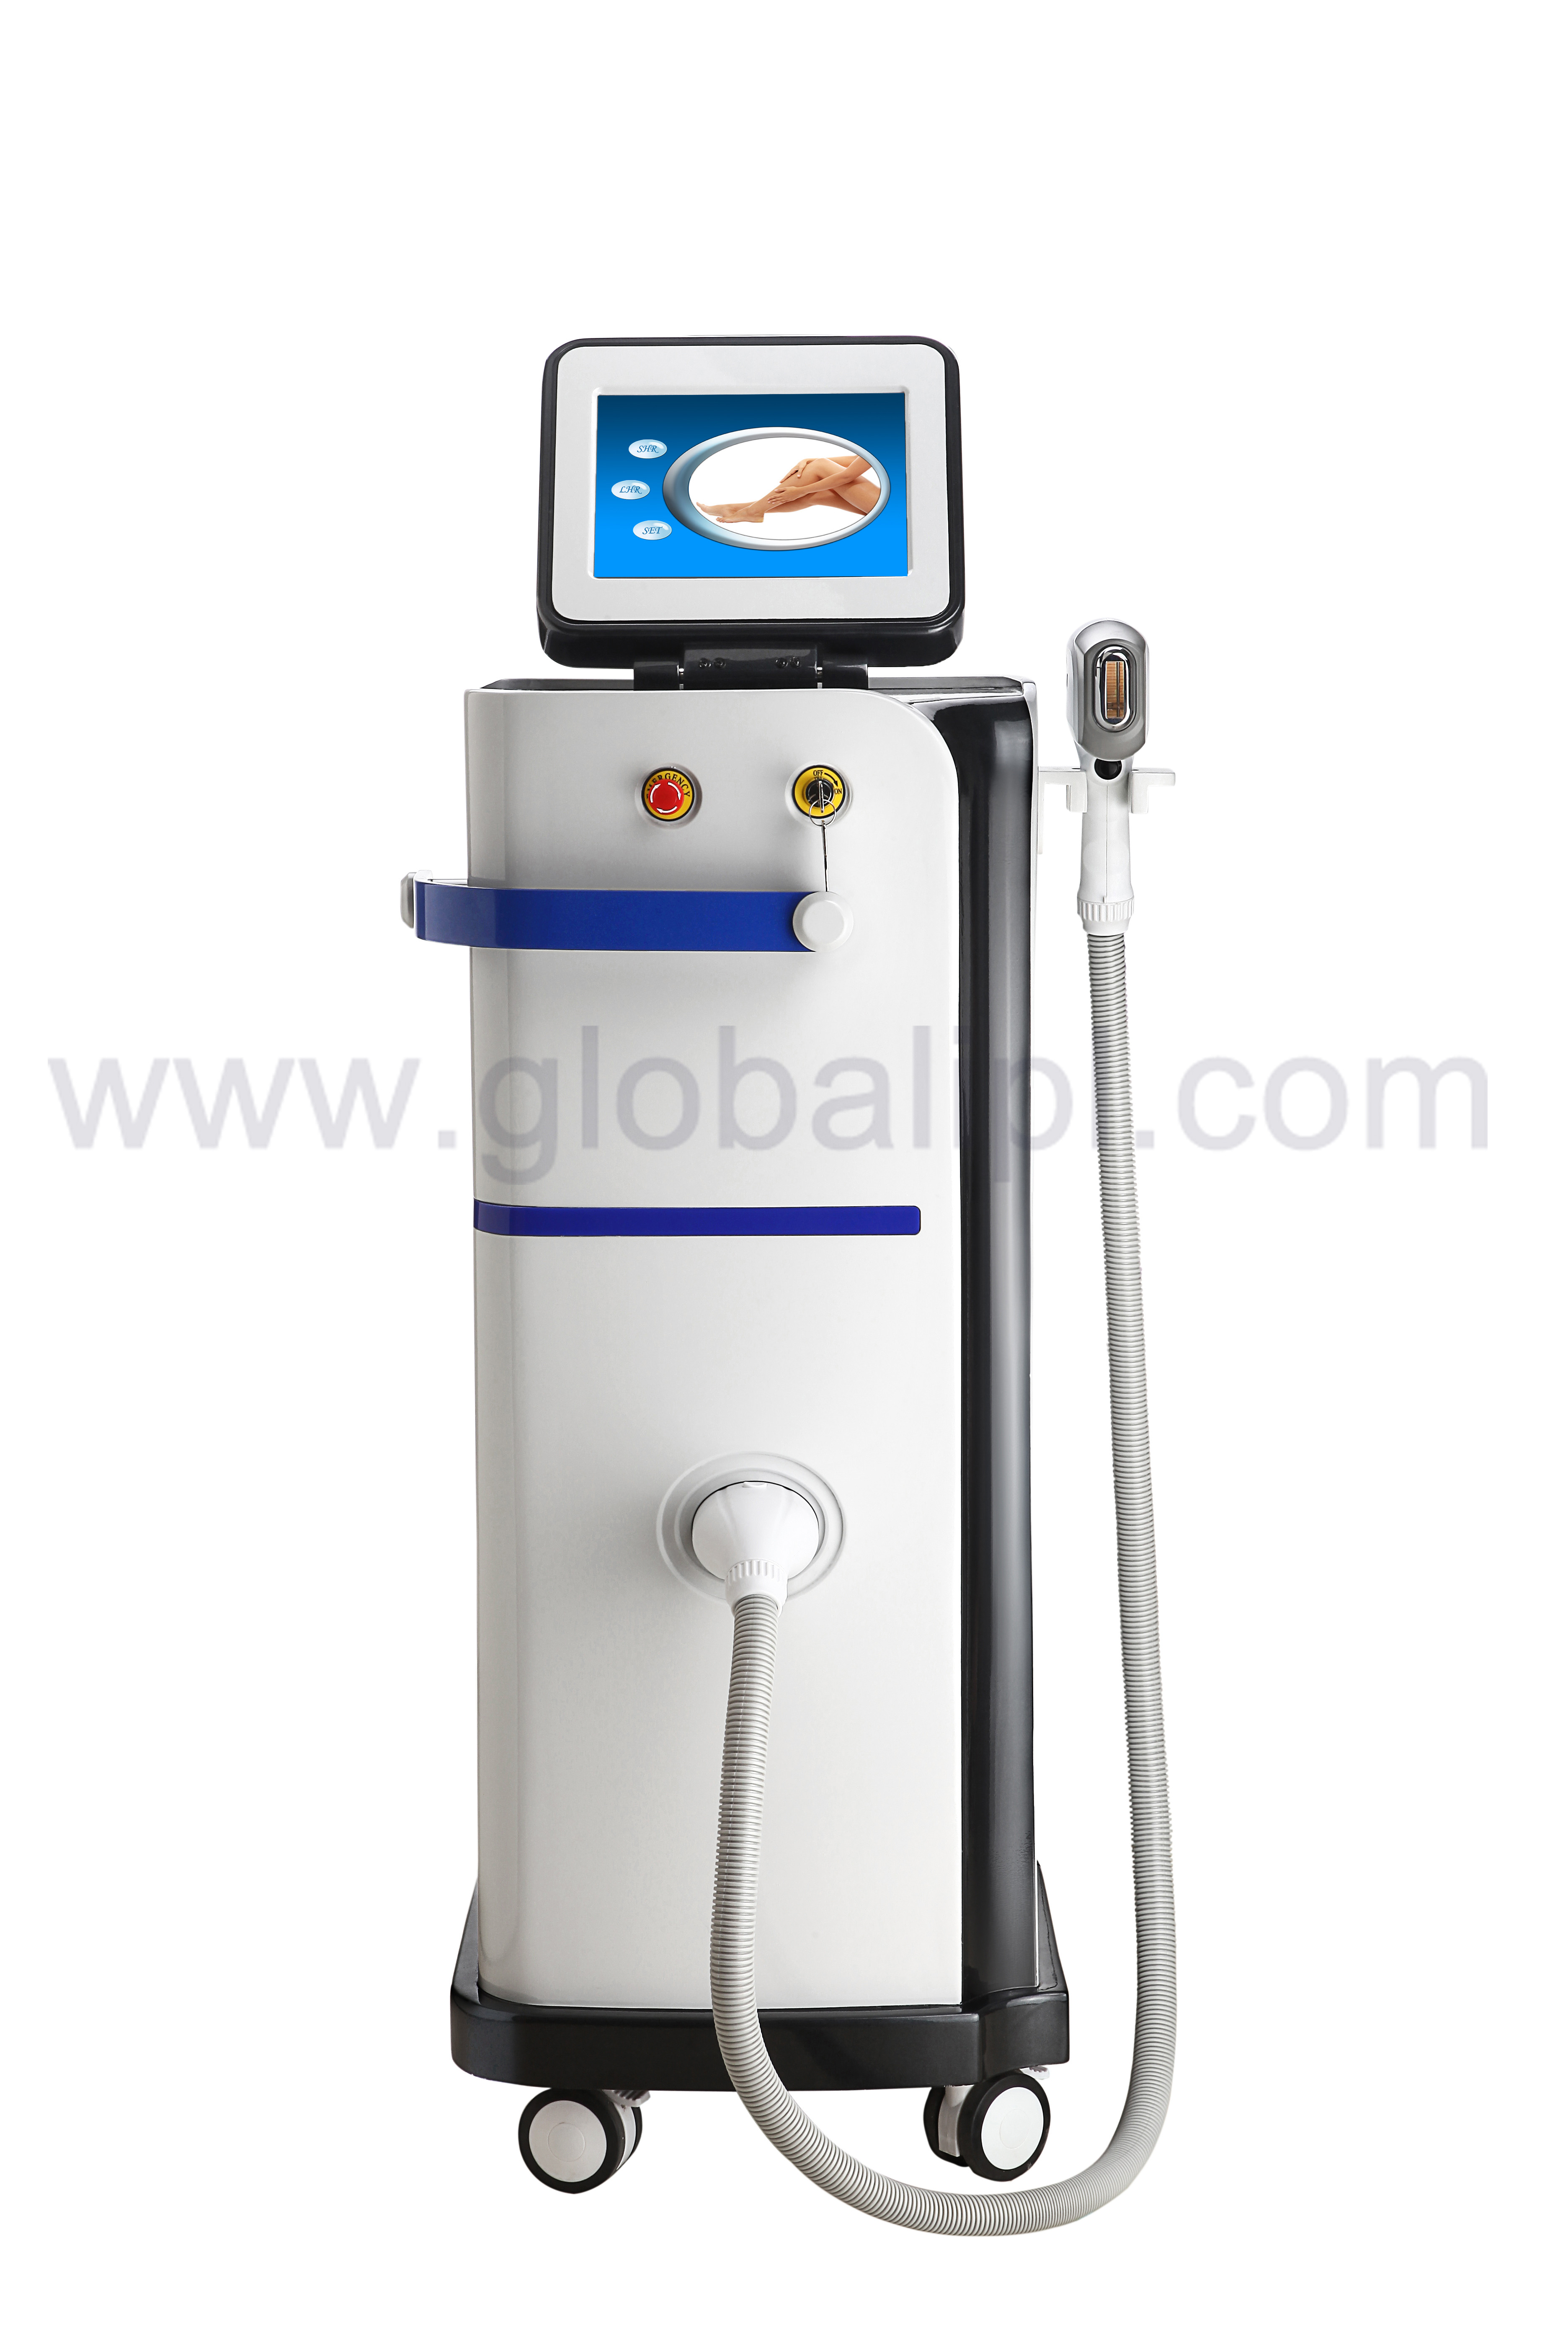 808nm Permanent Diode Laser Hair Removal Machine For Lip Hair Removal